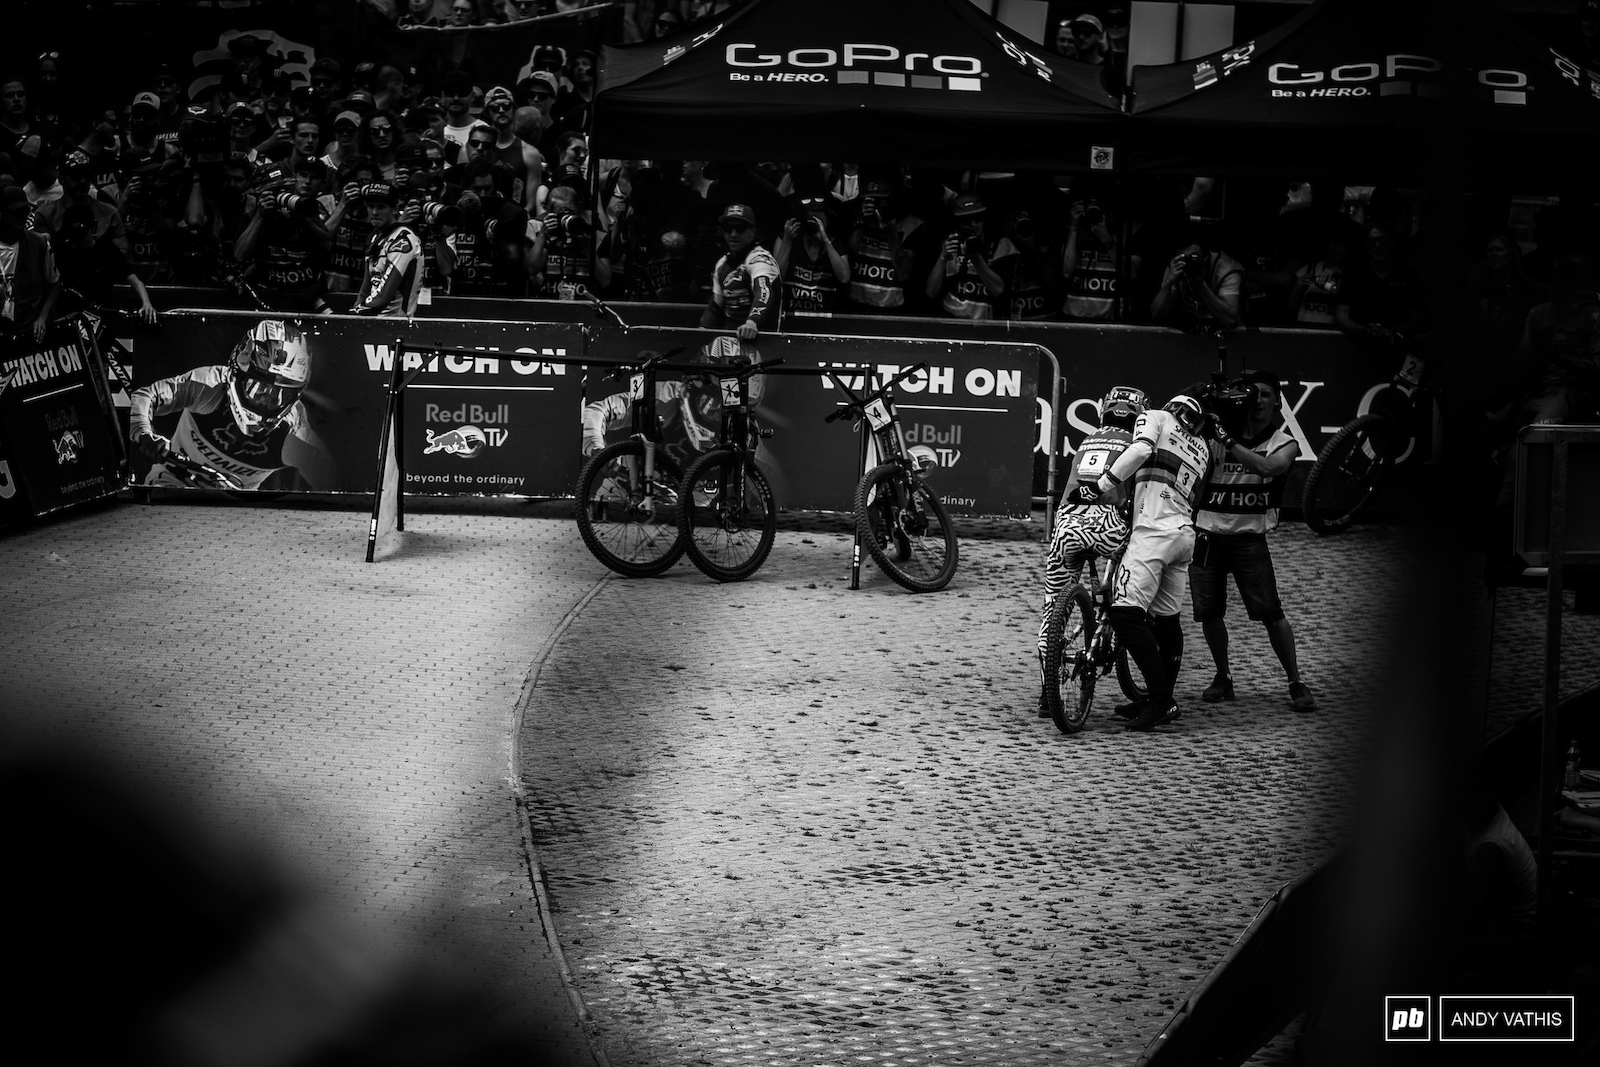 Loris Vergier was within reach of Bruni s pace before sliding out on the last flat corner as you drop into the arena. Loic wasted no time running over and comforting him.